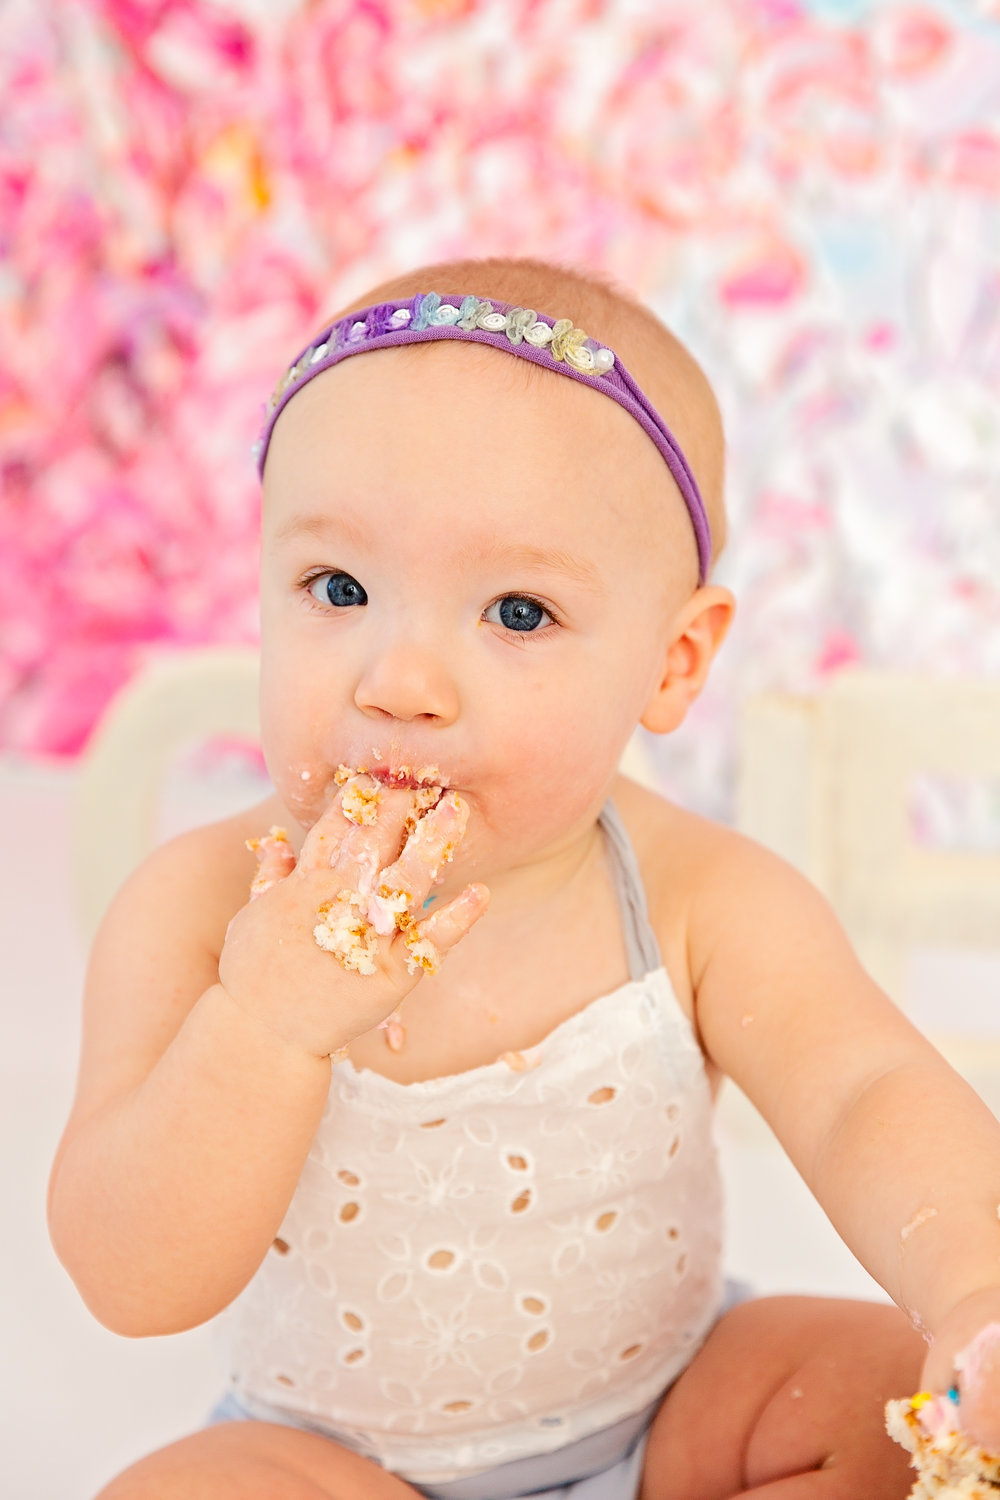 close up of one year old baby girl eating cake off hand